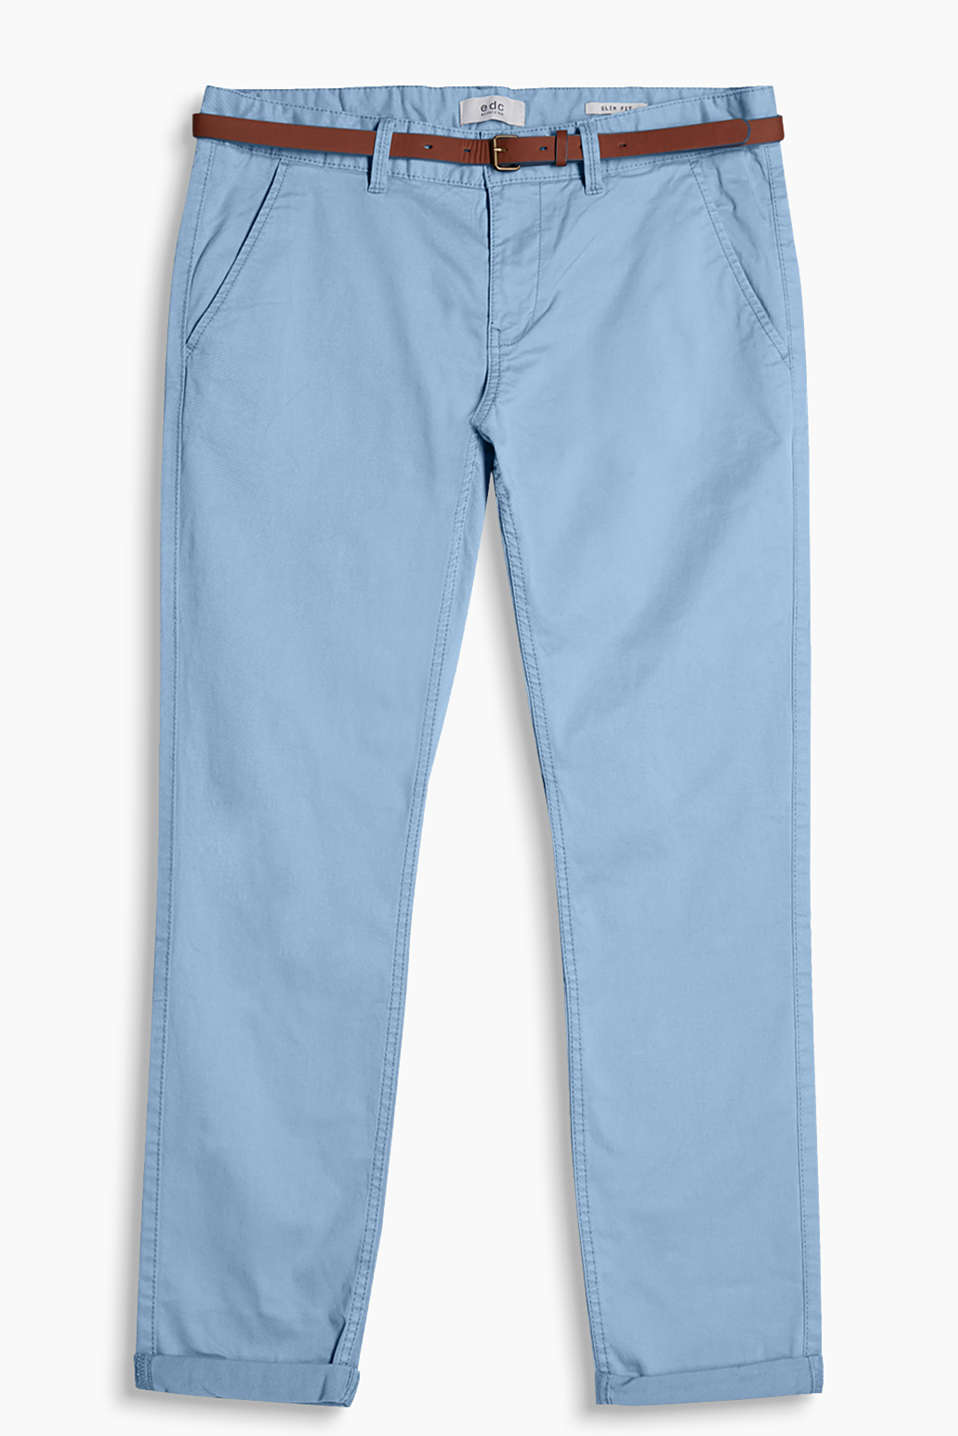 Chinos in a garment-washed look and a narrow faux leather belt, made of cotton with added stretch for comfort